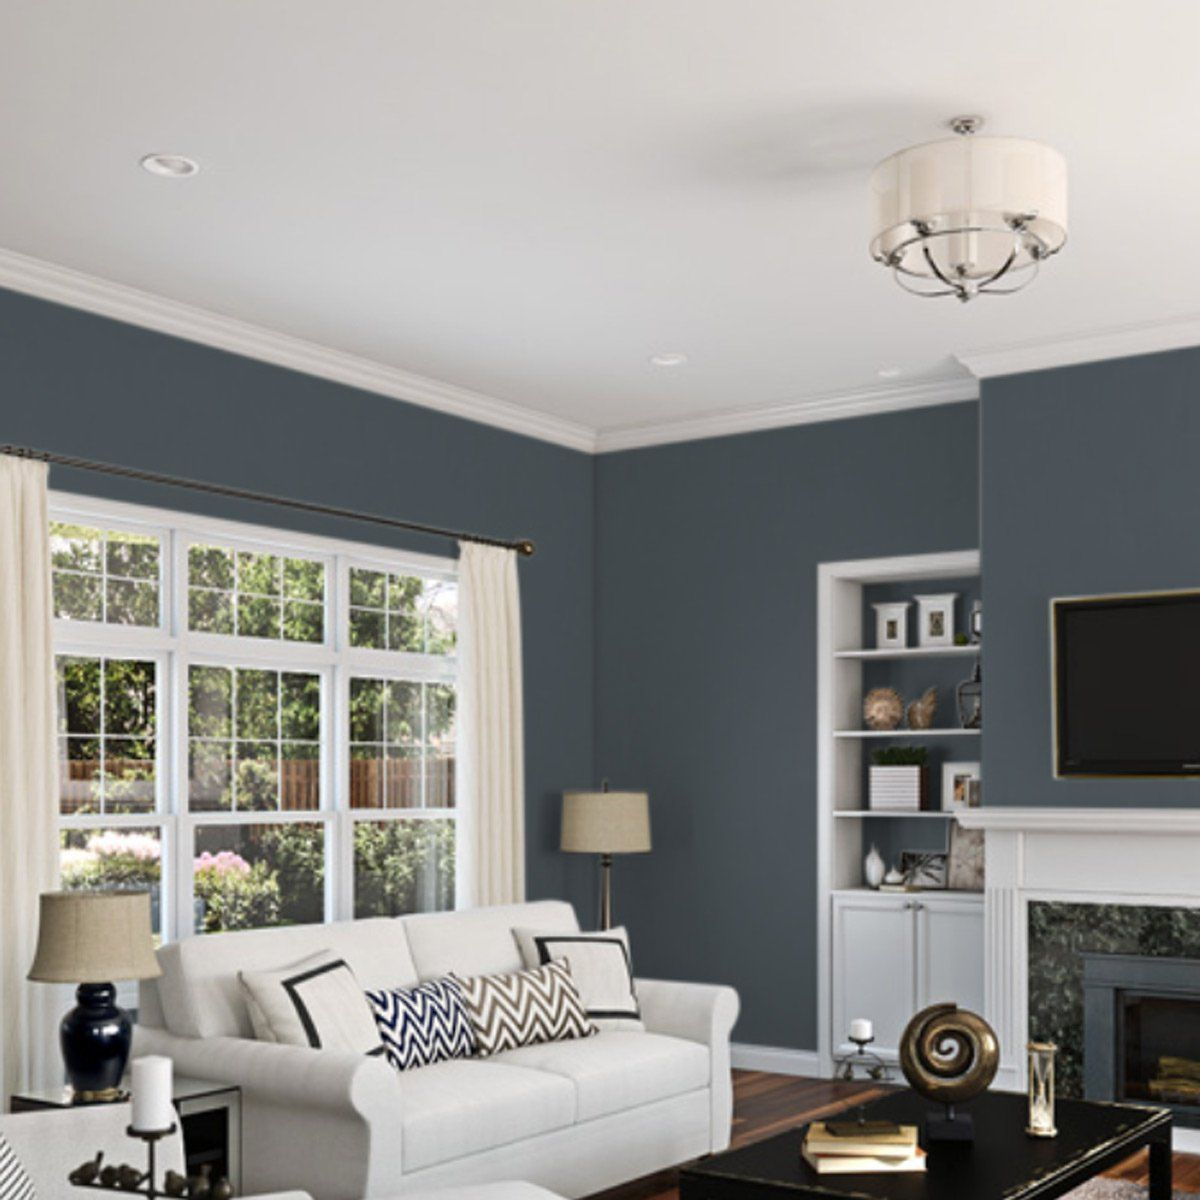 find the best wall paint colors for your interior walls on indoor wall paint colors id=85869